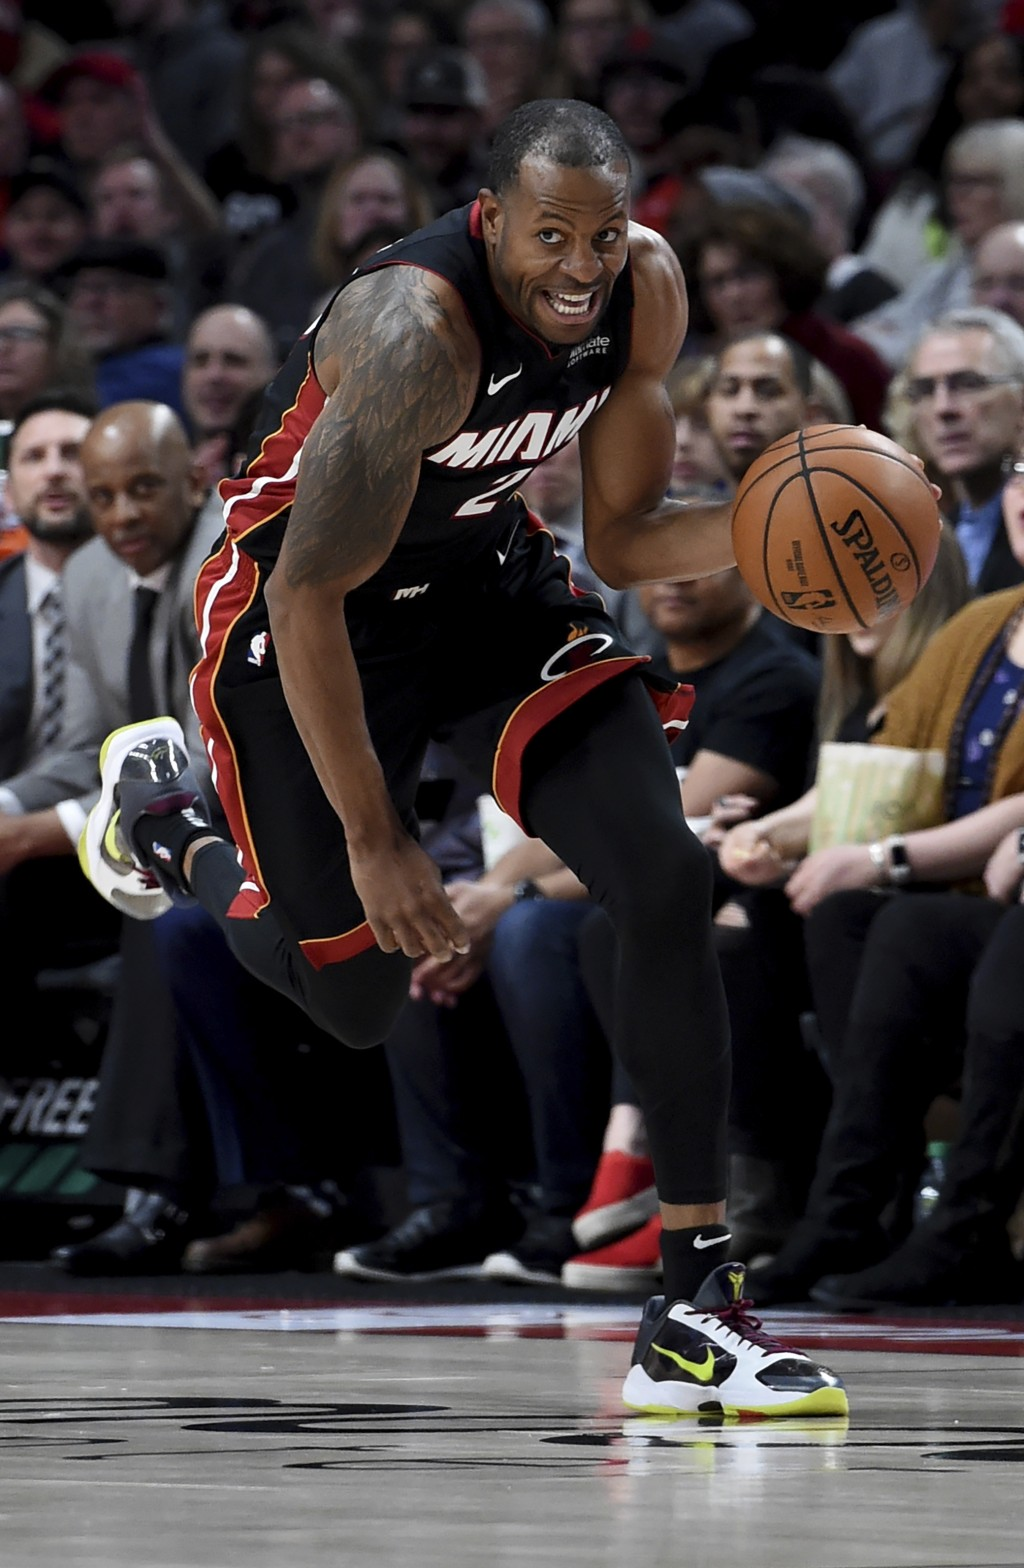 Miami Heat guard Andre Iguodala brings the ball up the court during the first half of an NBA basketball game against the Portland Trail Blazers in Por...